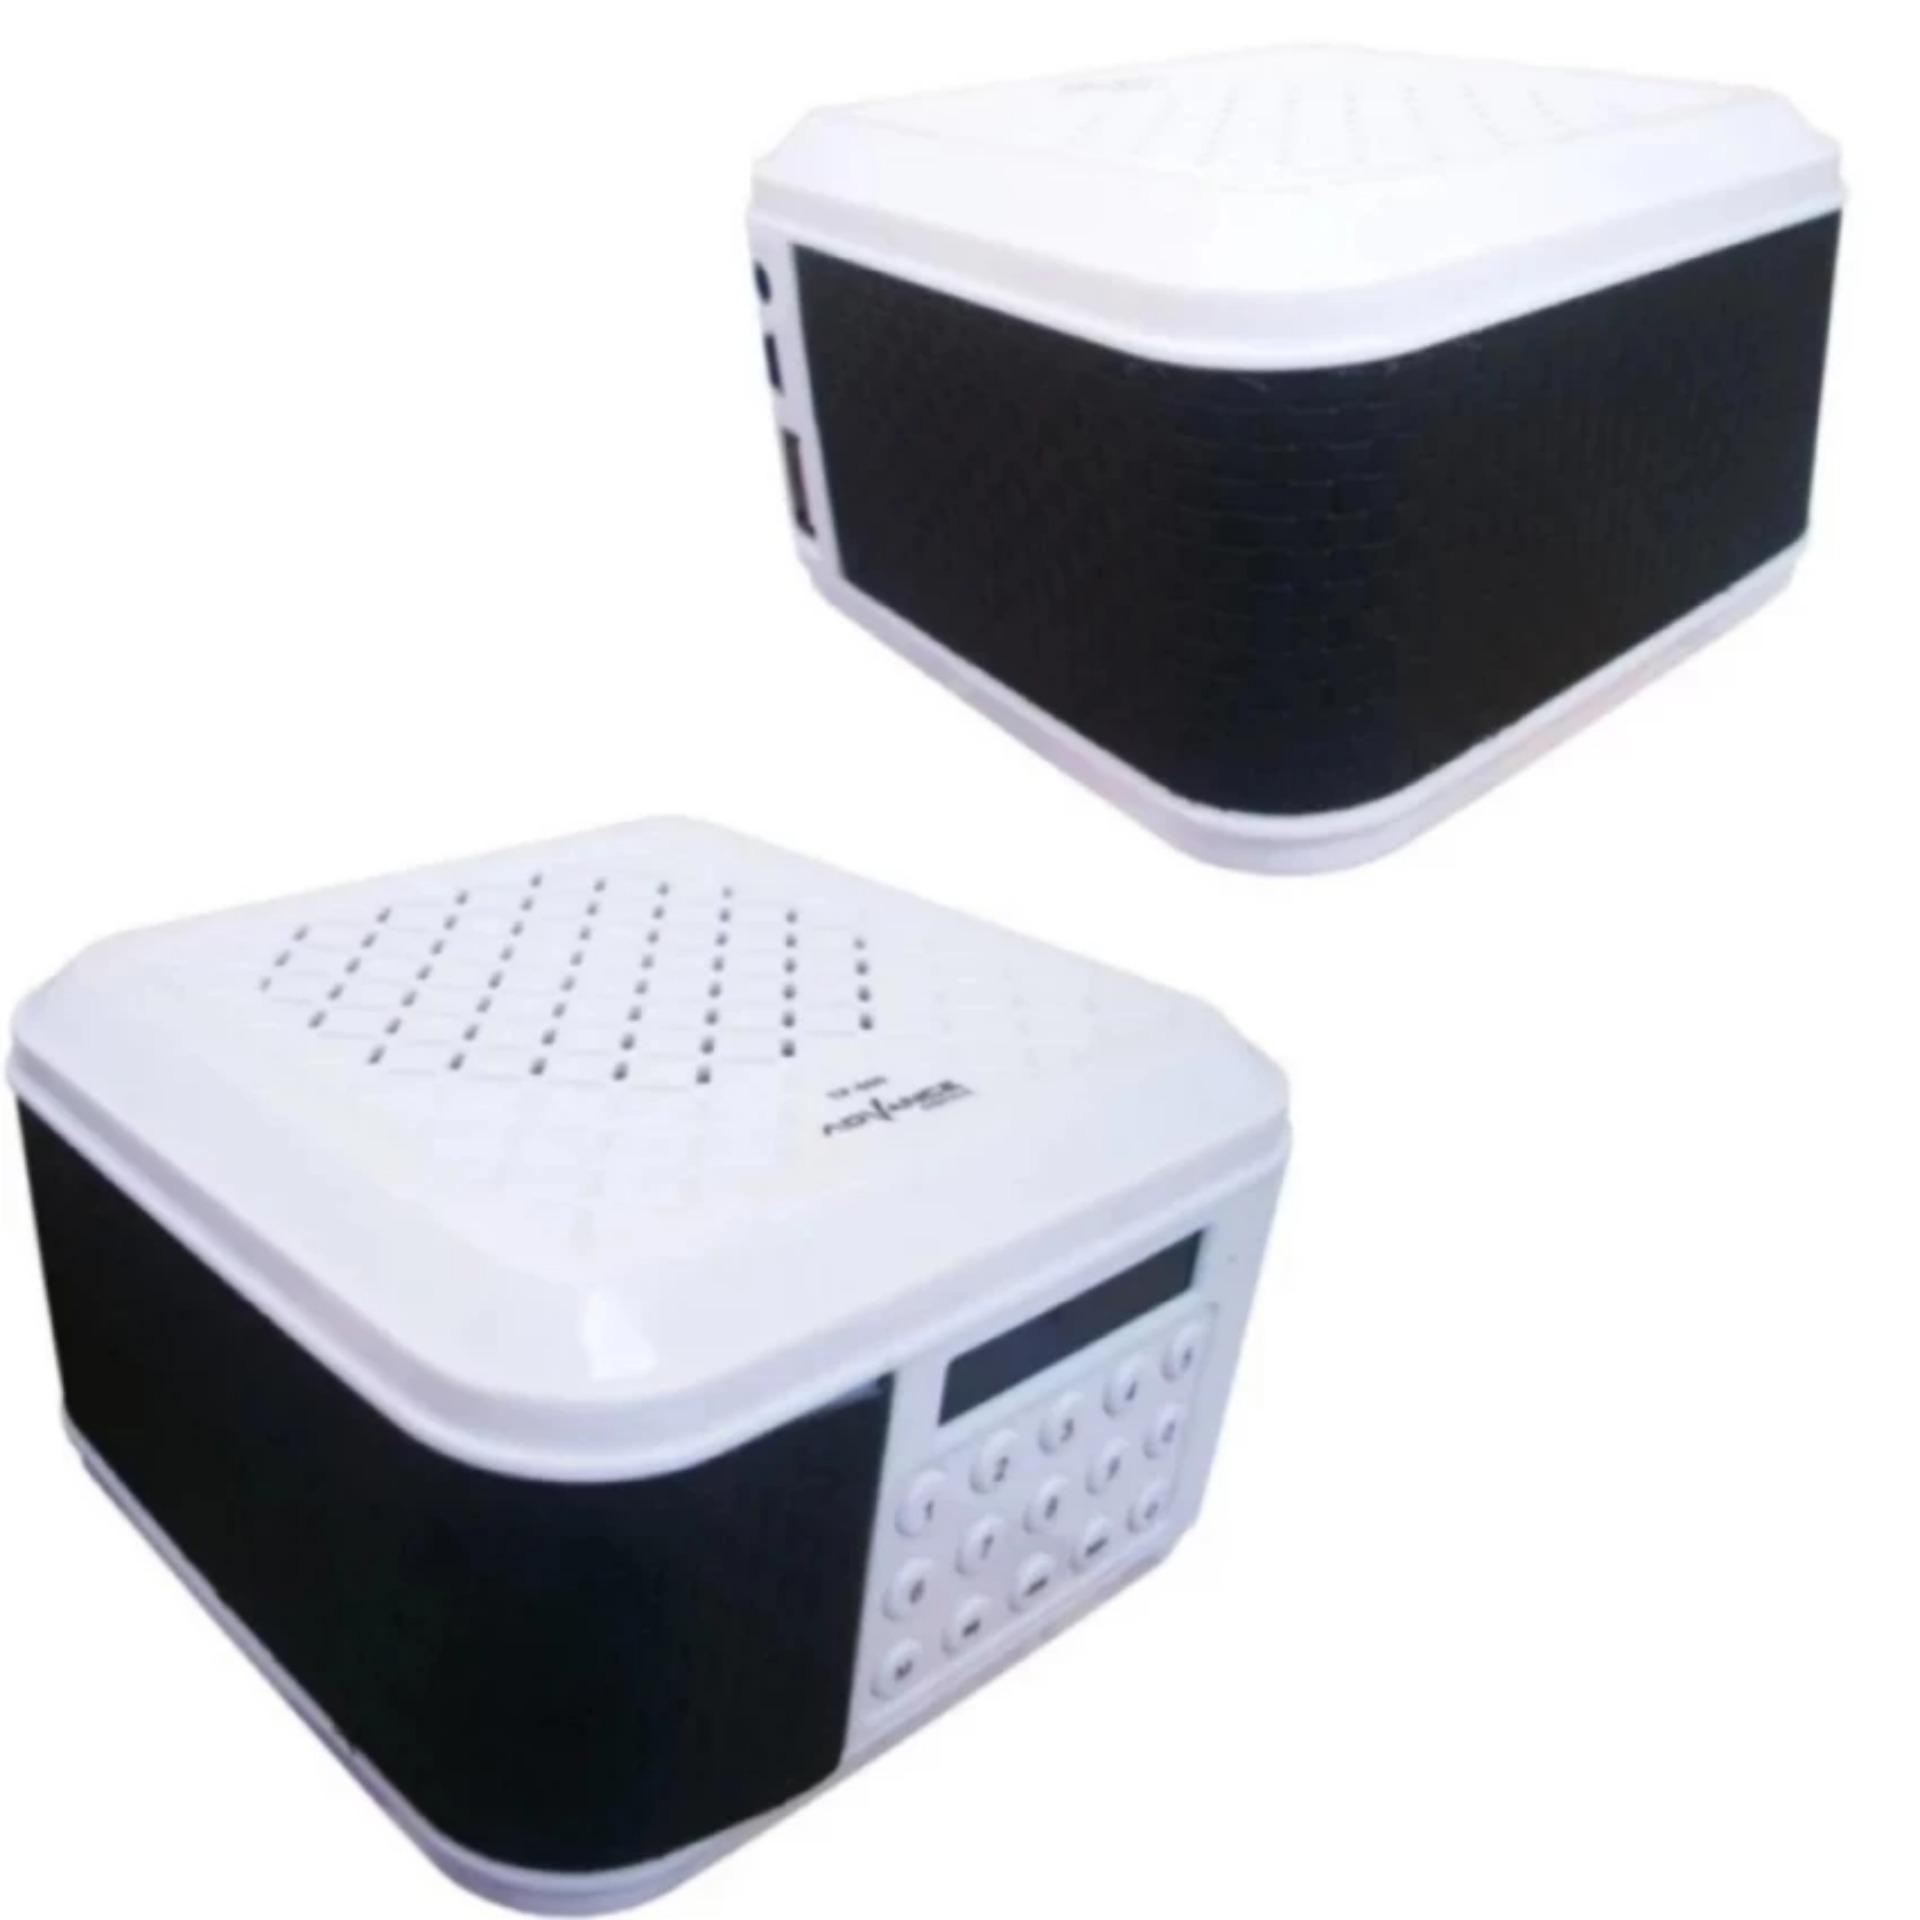 Dimana Beli Speaker Portable Xtra Power Sound Advance Tp 600 Kubangsatii Star